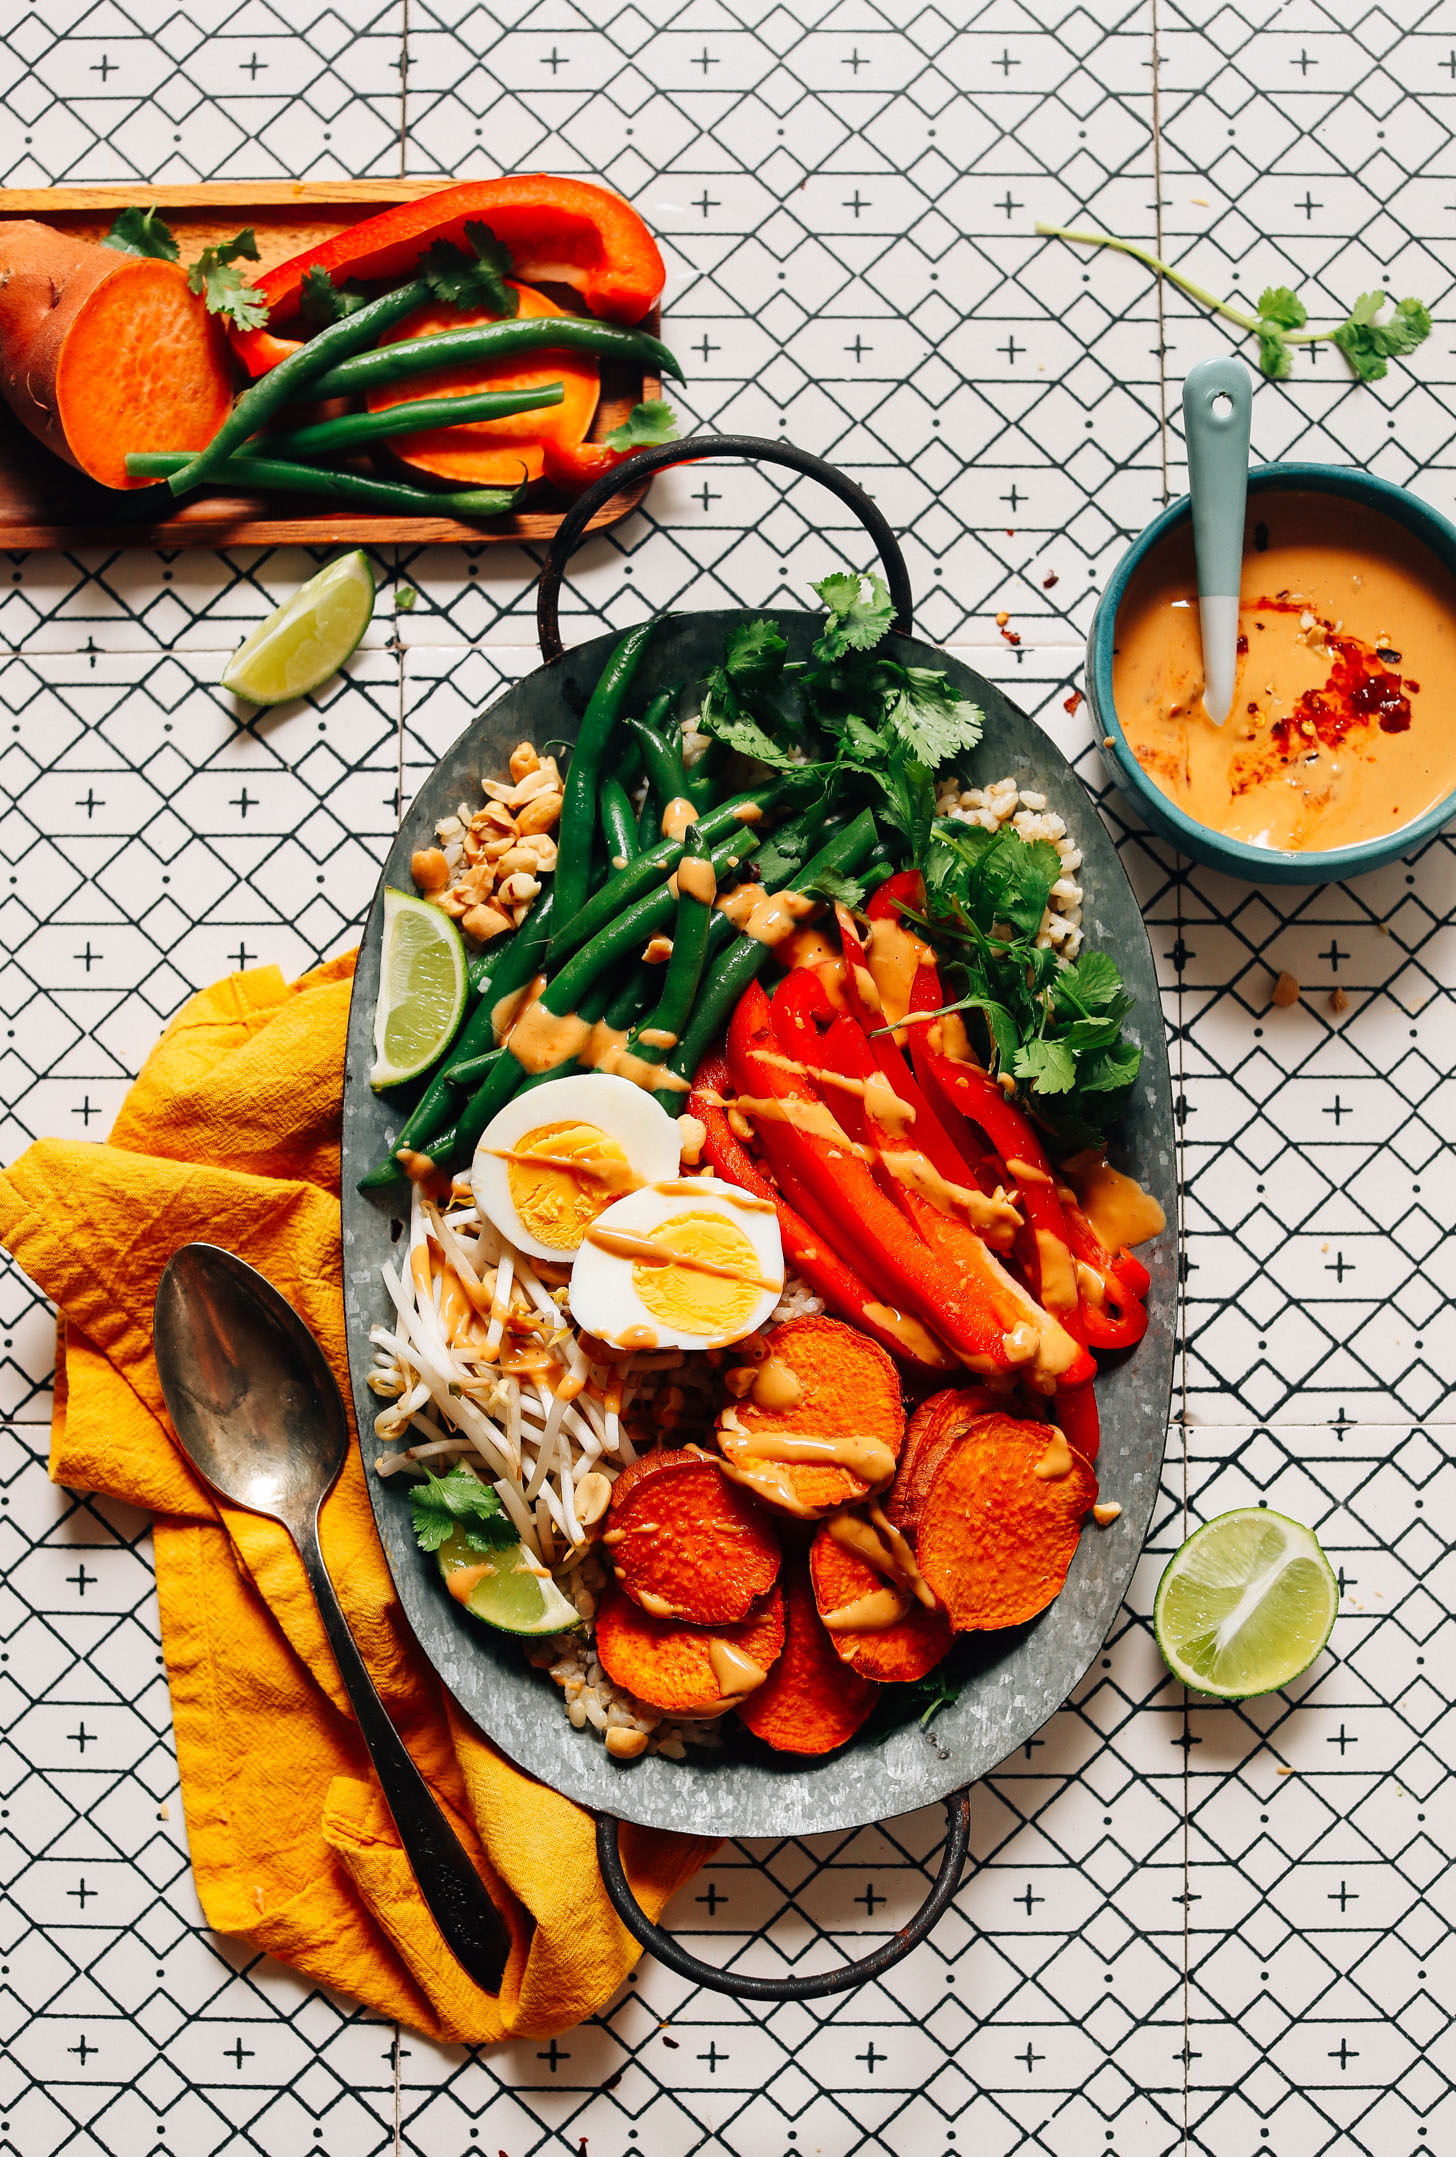 Tray of gluten-free Gado Gado made with brown rice, veggies, boiled egg, and a Spicy Peanut Sauce